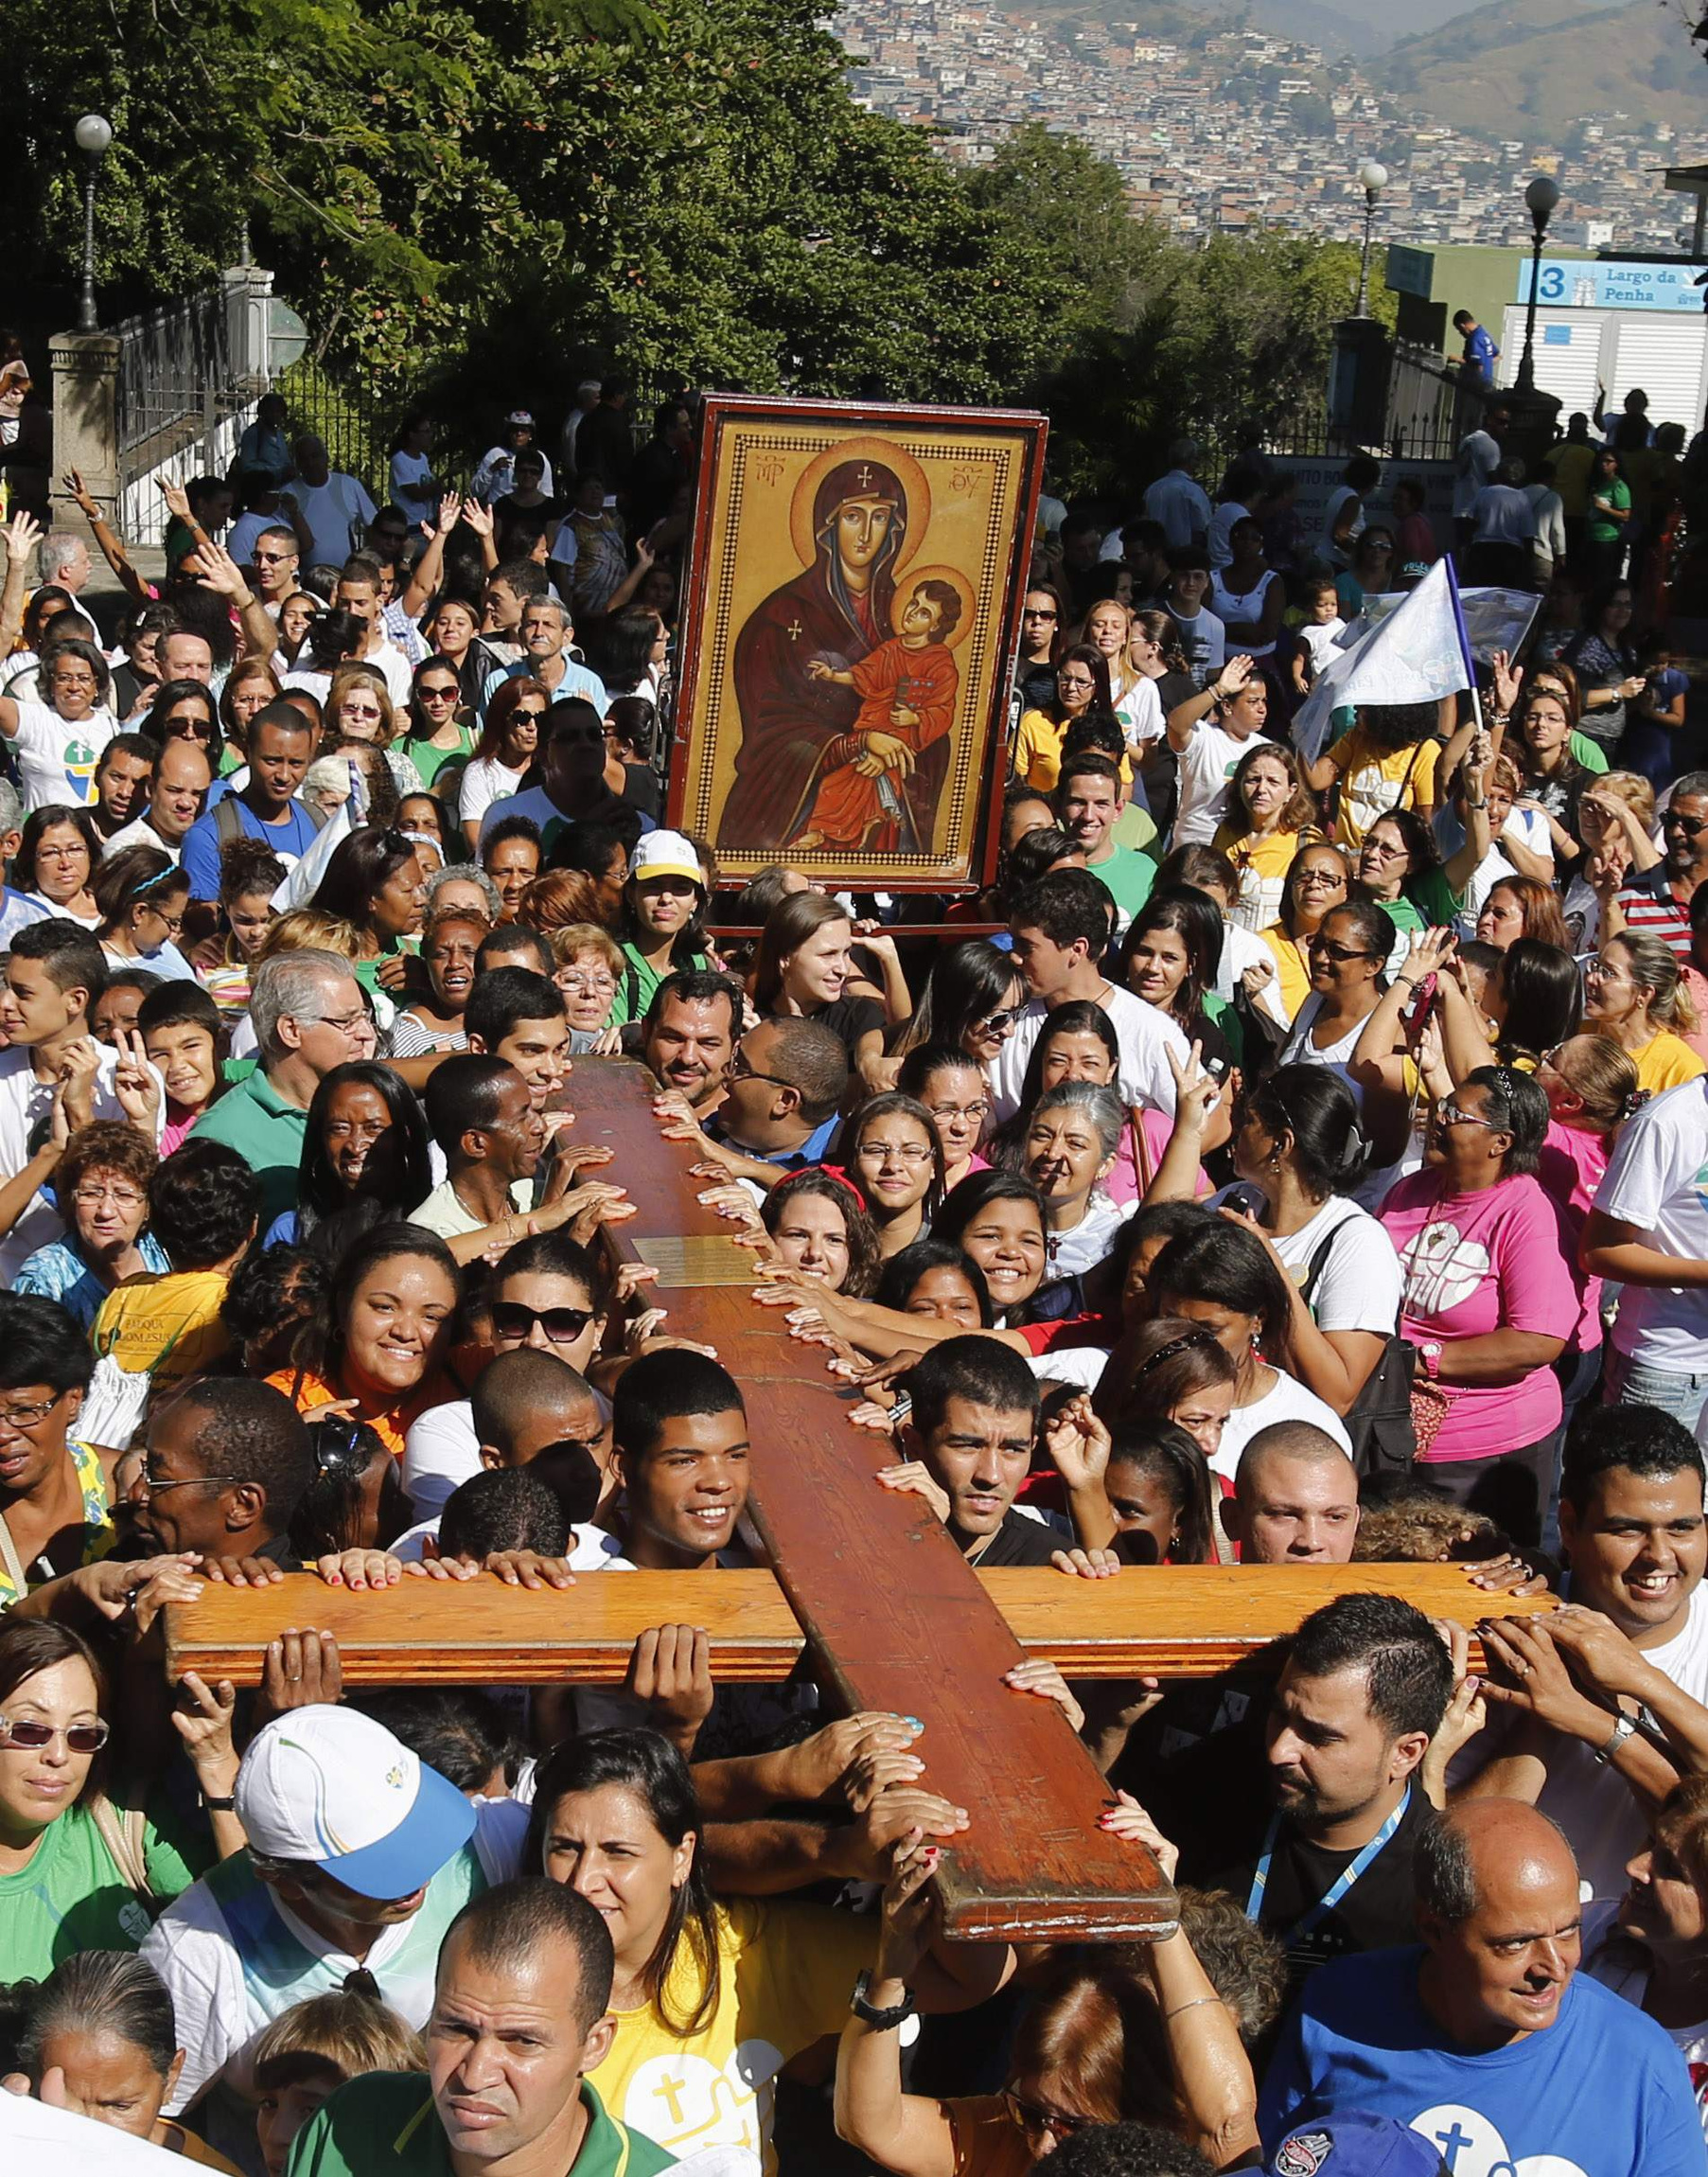 Young people carry World Youth Day cross during visit to Sanctuary of Our Lady of Penha in Rio de Janeiro